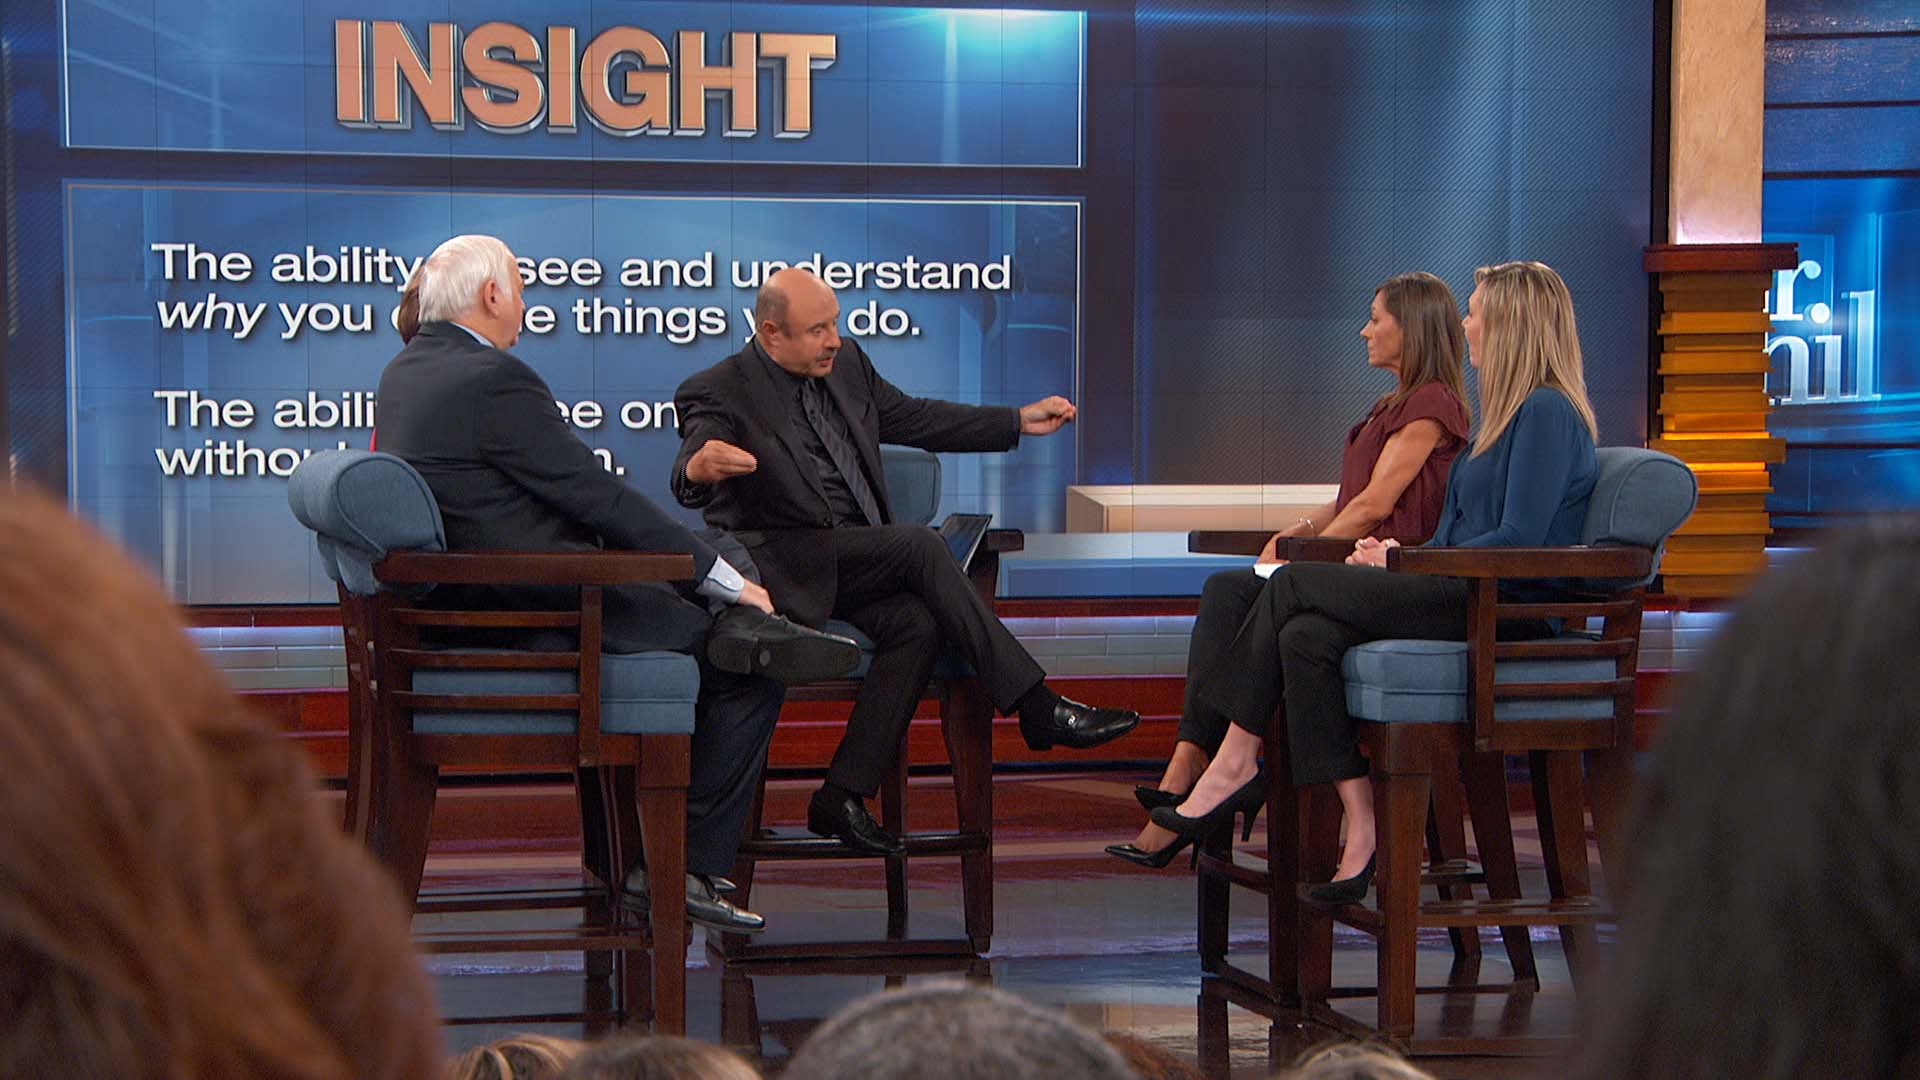 Dr. Phil To Guest: 'What I Want You To Do, Is Recognize That The Only Person You Control Is You'